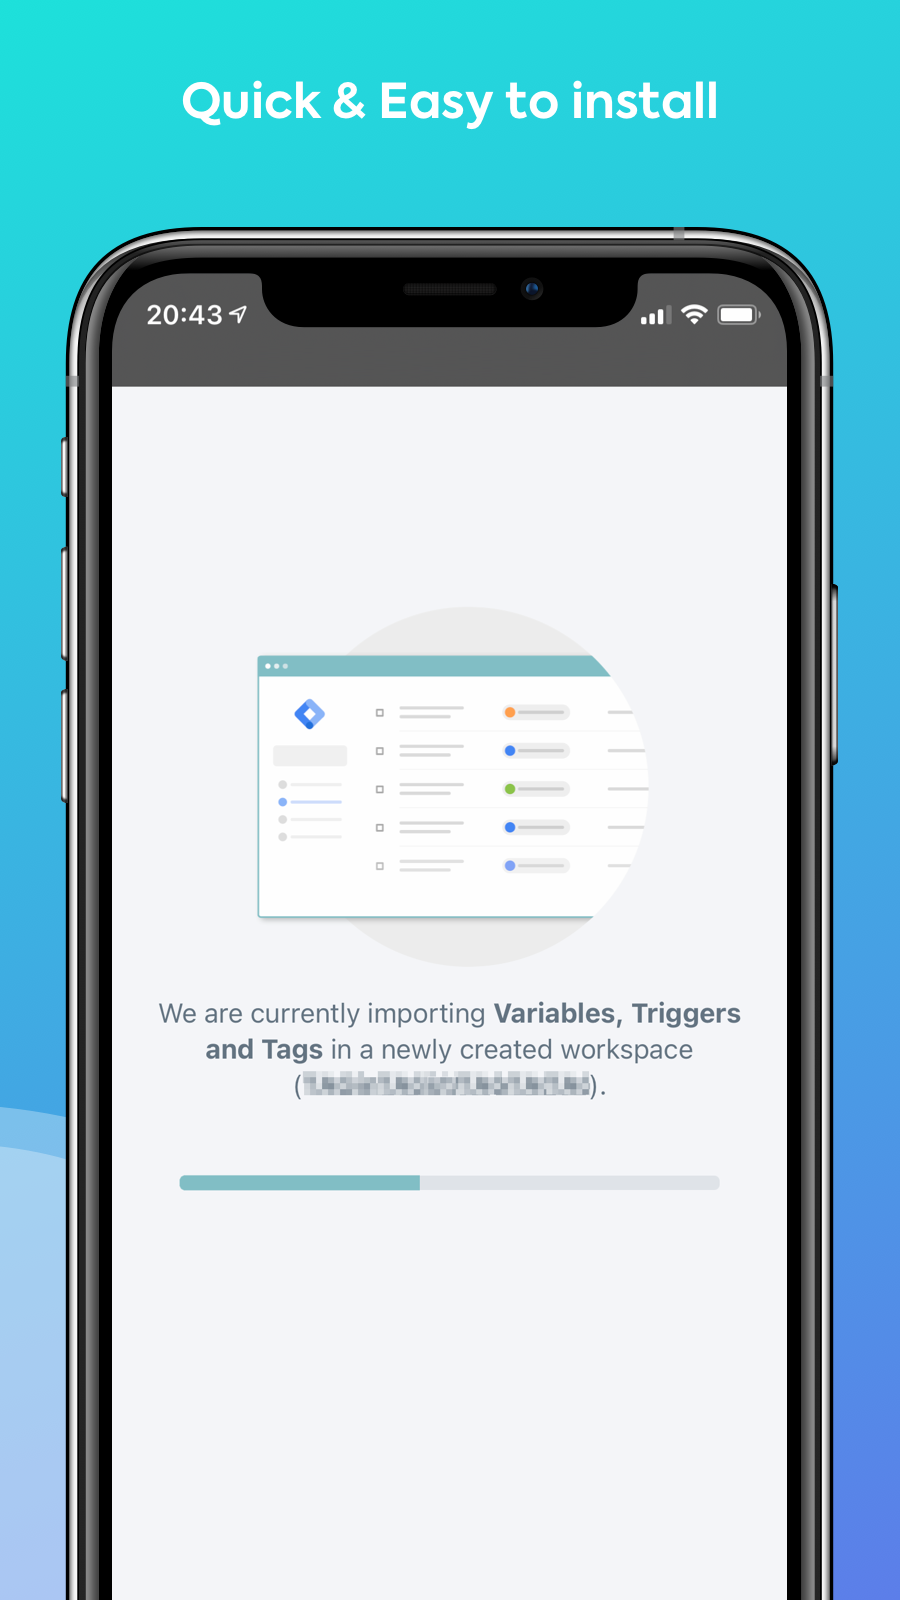 Easy Tag - Quick & Easy to install